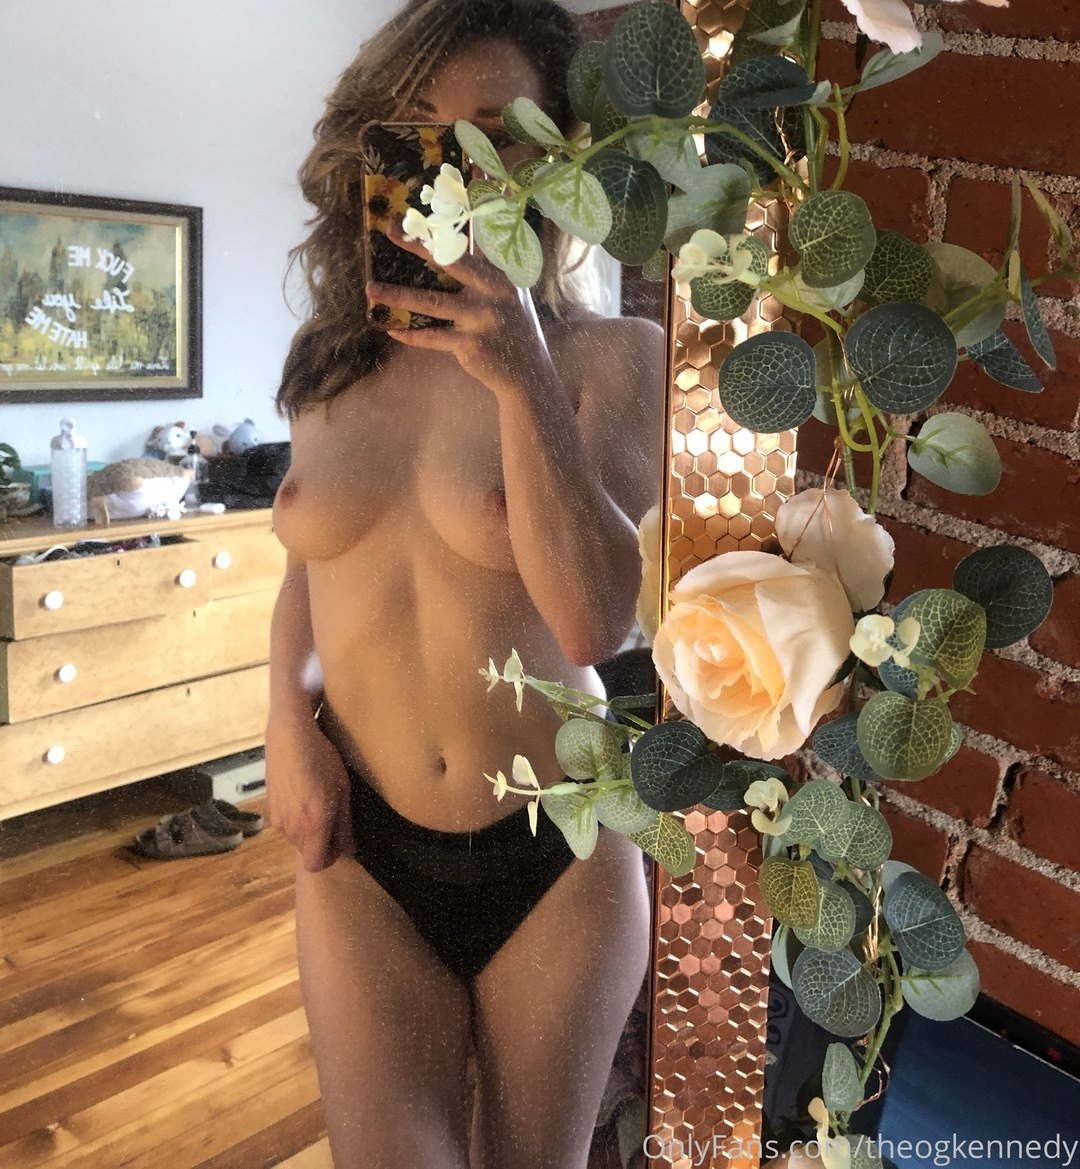 Kate Kennedy Theogkennedy Onlyfans Nudes Leaks 0025